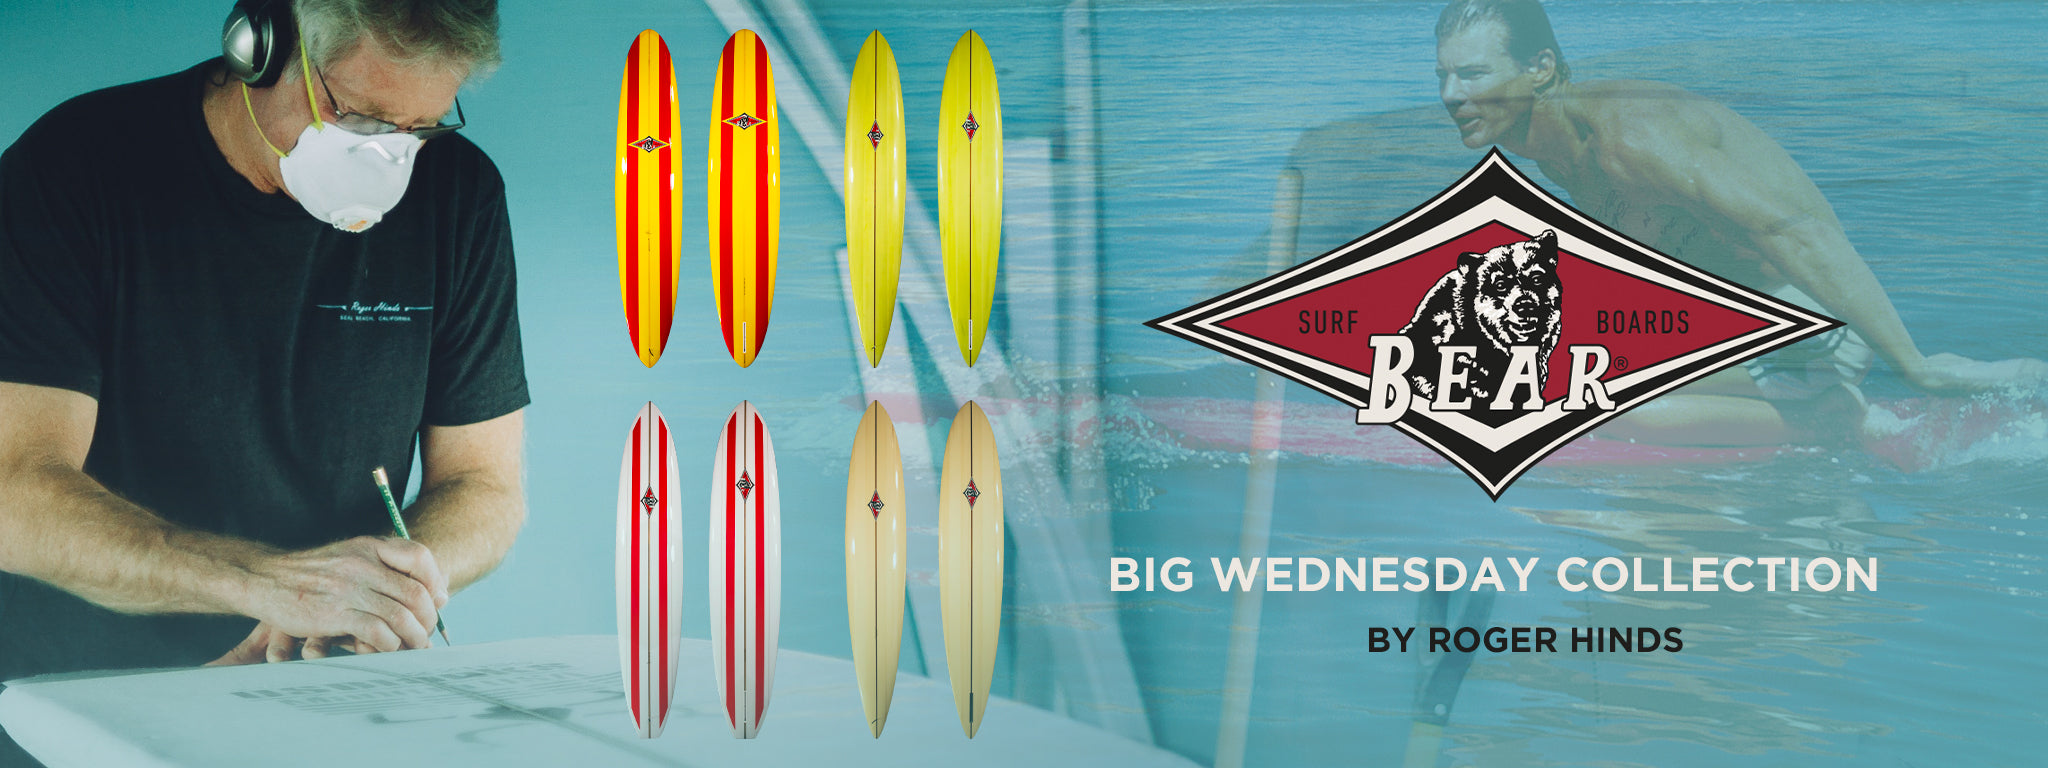 Big Wednesday Collection by Roger Hinds